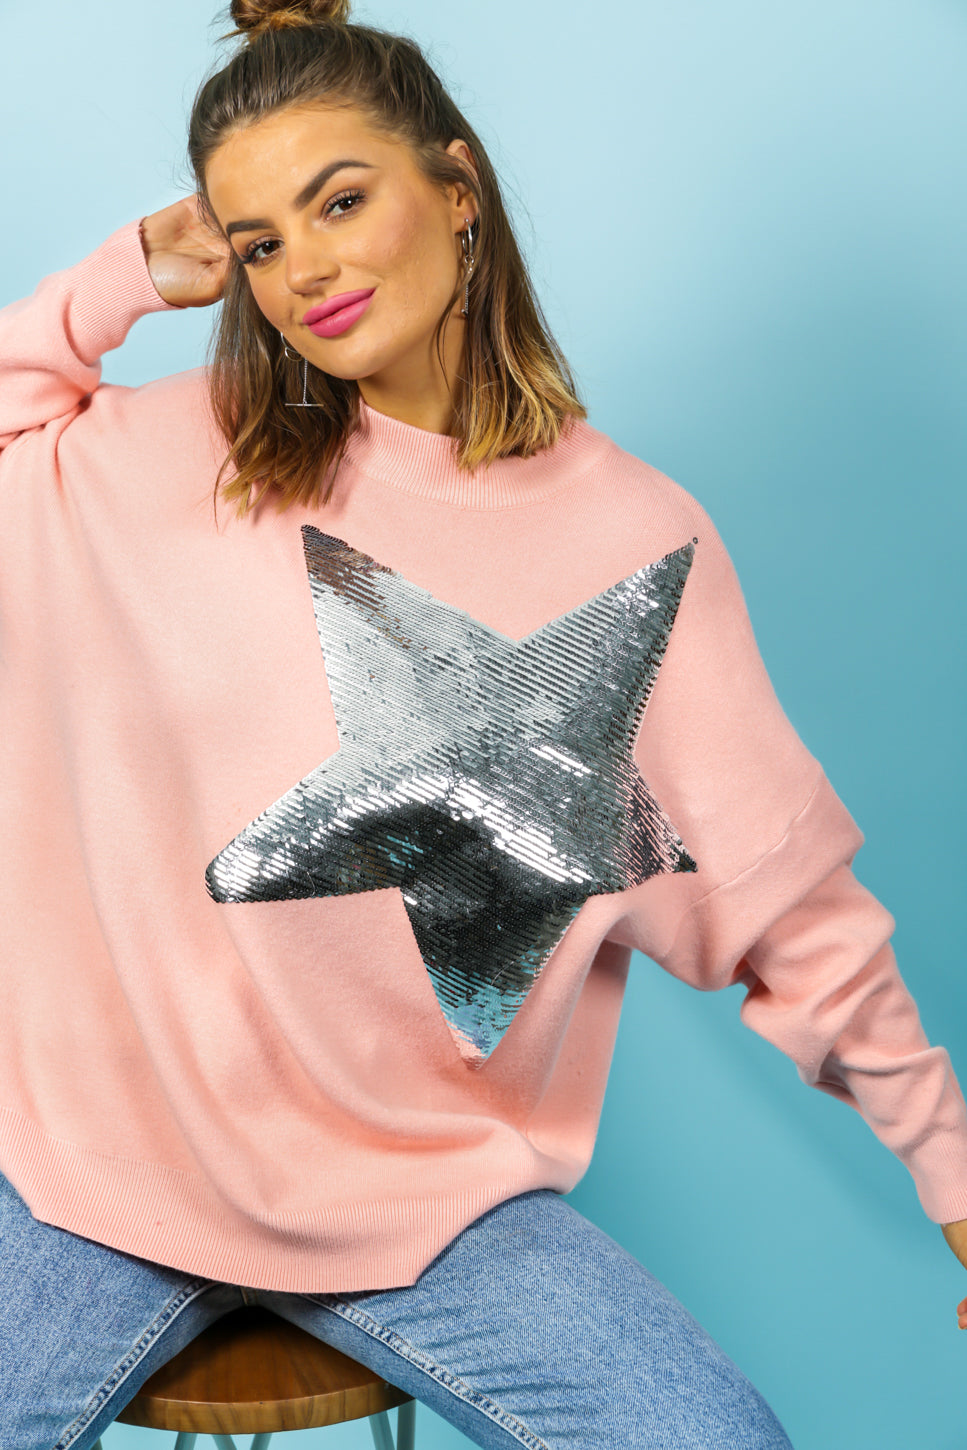 https://cdn.shopify.com/s/files/1/0062/6661/7925/files/product-video-born_to_be_a_star-jumper-in-pink.mp4?6647